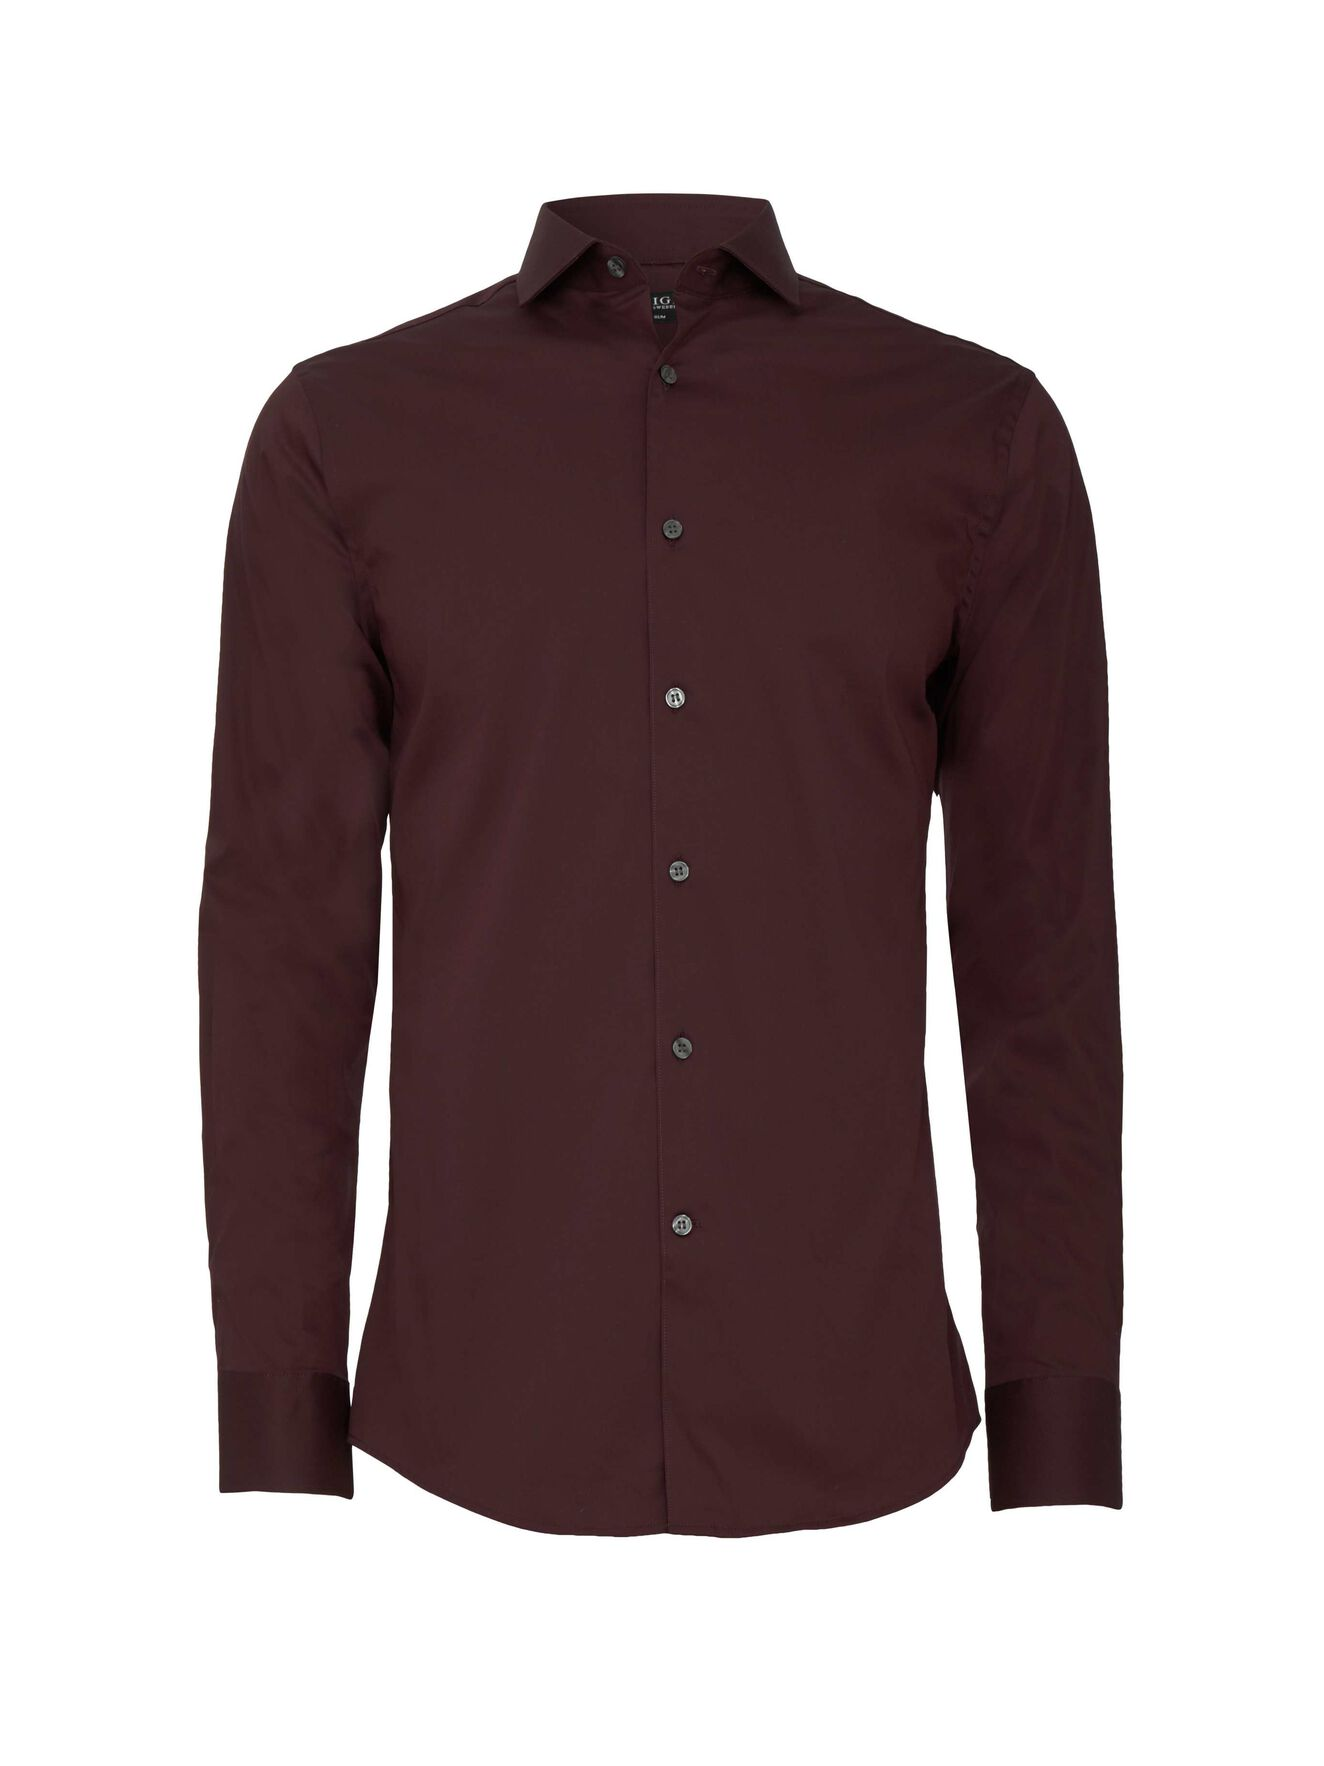 Farrell 5 Shirt in Dark Heather from Tiger of Sweden